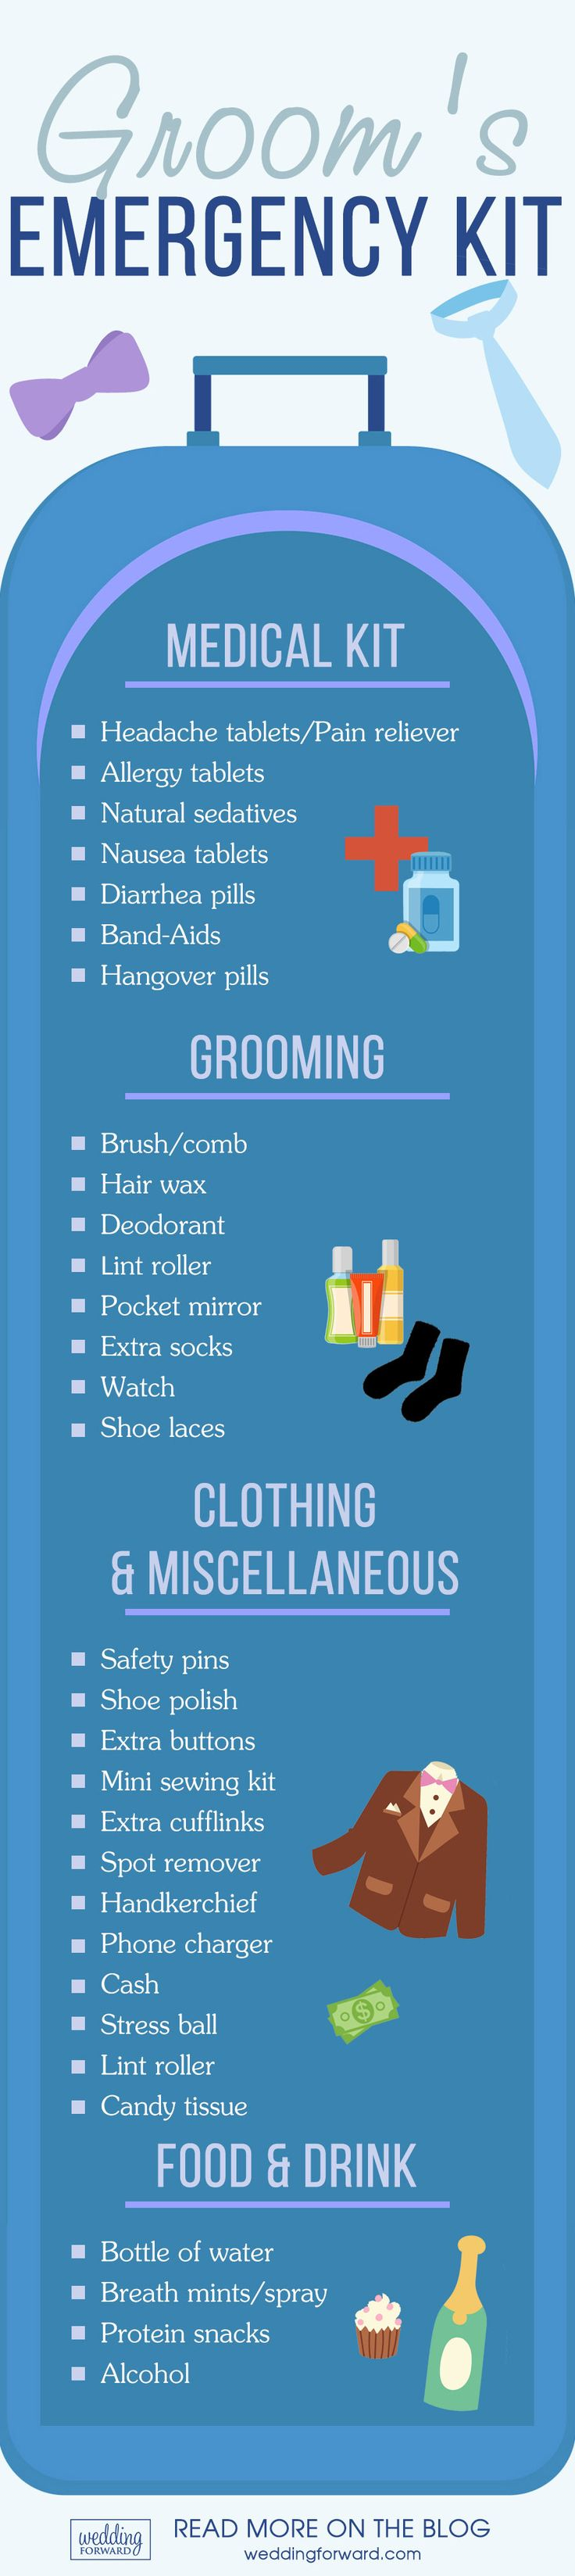 Creatinng A Wedding Day Emergency Bag ❤️ Create grooms emergency kit with everything you might need to handle small and moderate problems. See more: http://www.weddingforward.com/creatinng-wedding-day-emergency-bag/ #groom #emergency #kit